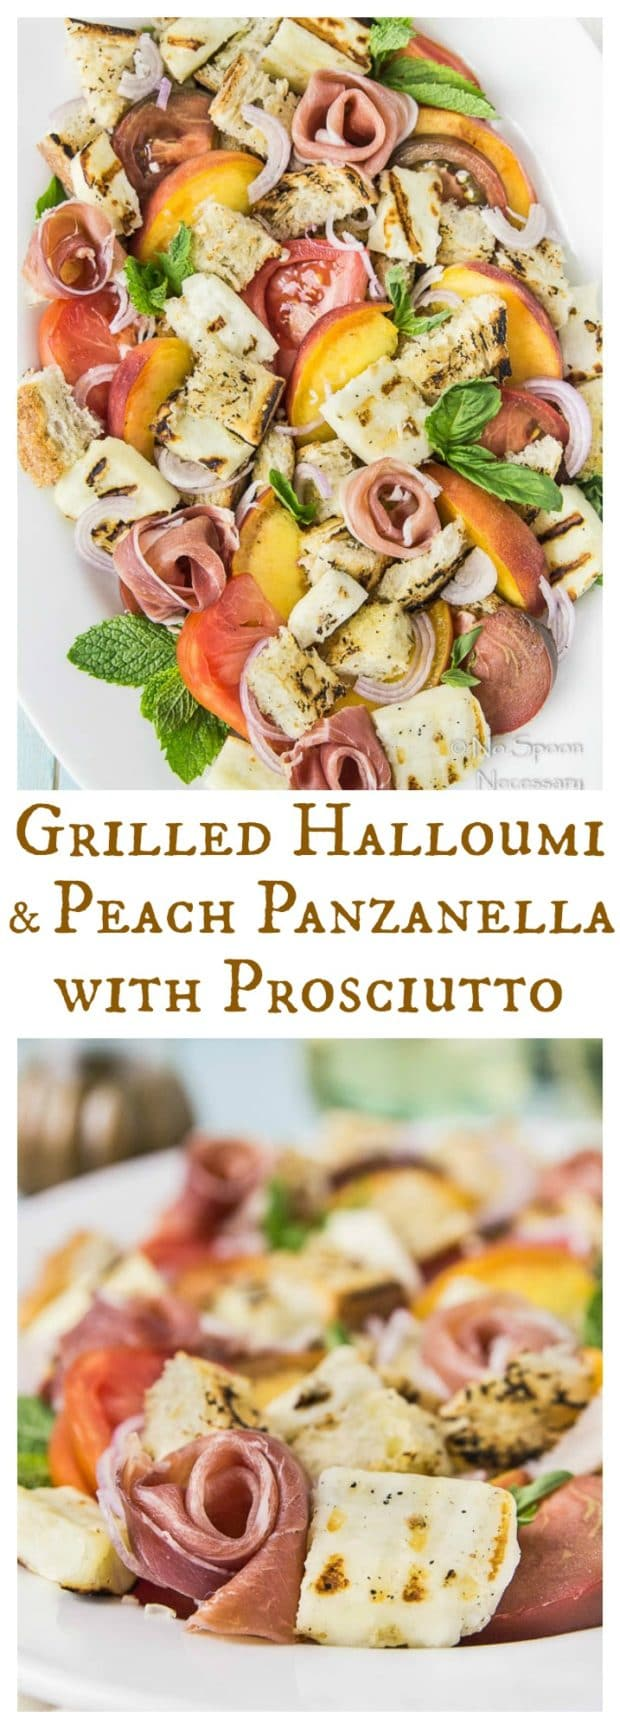 Grilled Halloumi & Peach Panzanella with Prosciutto-long pin2